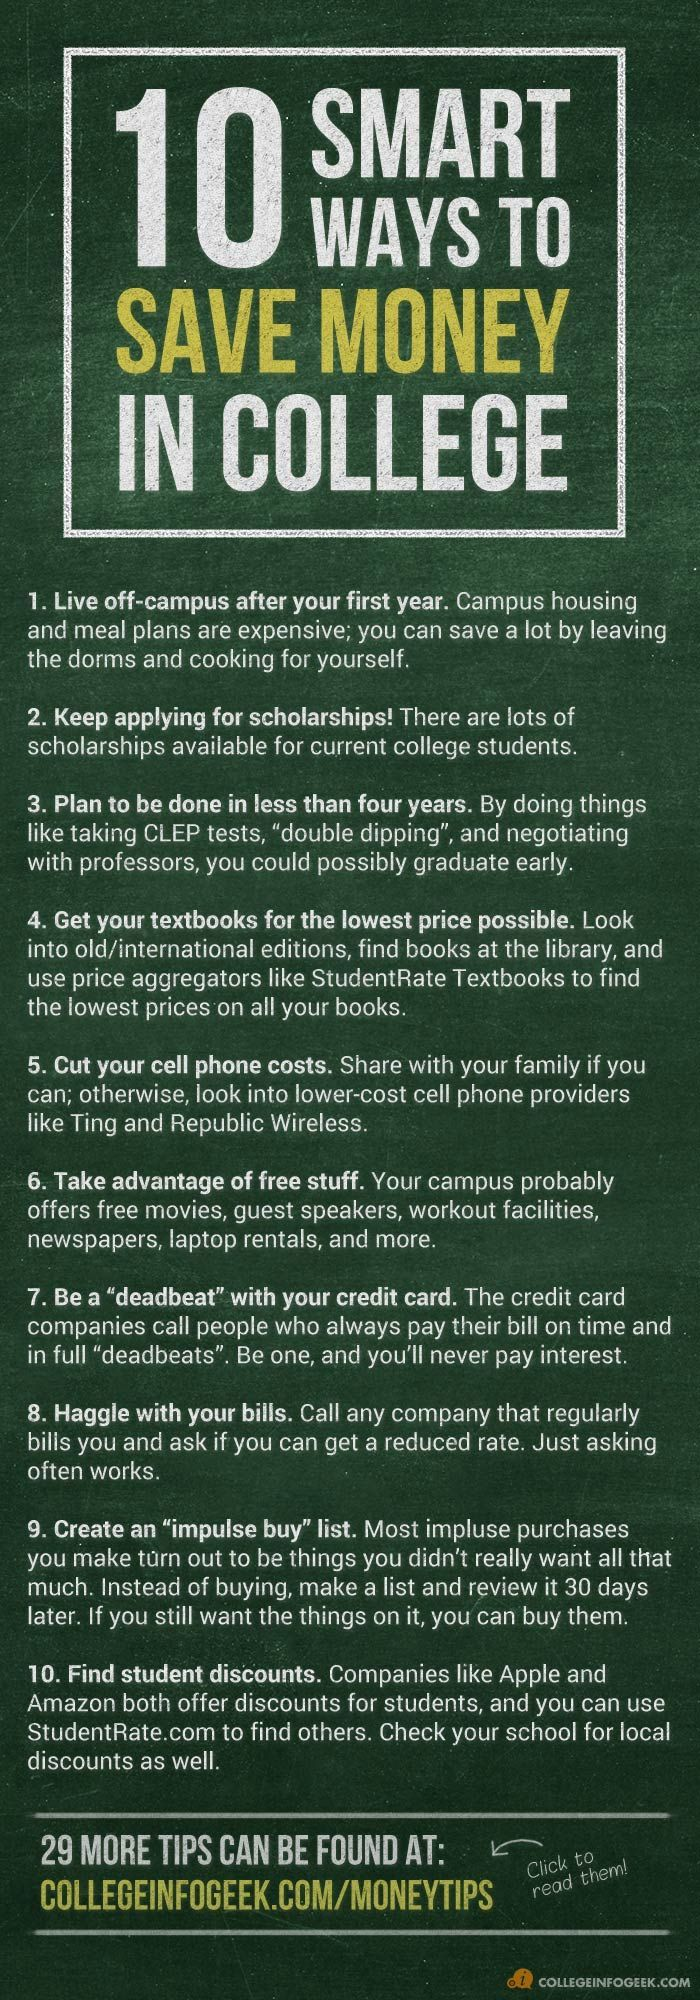 5 Ways How to Save and Make Money as a College Student